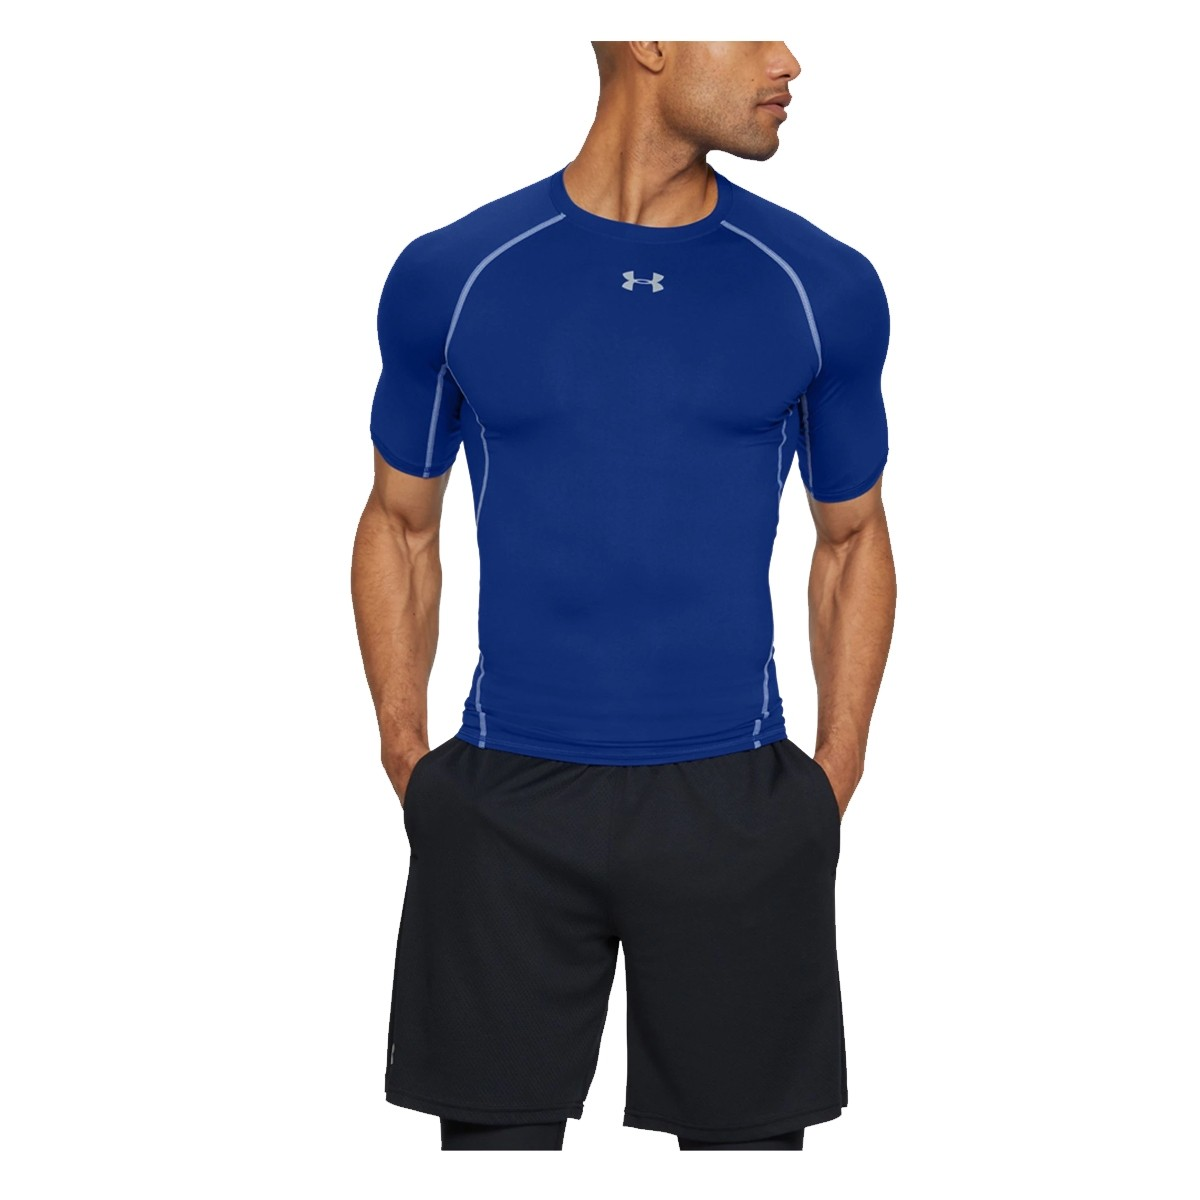 Camiseta Compresión Training HeatGear 'Blue'